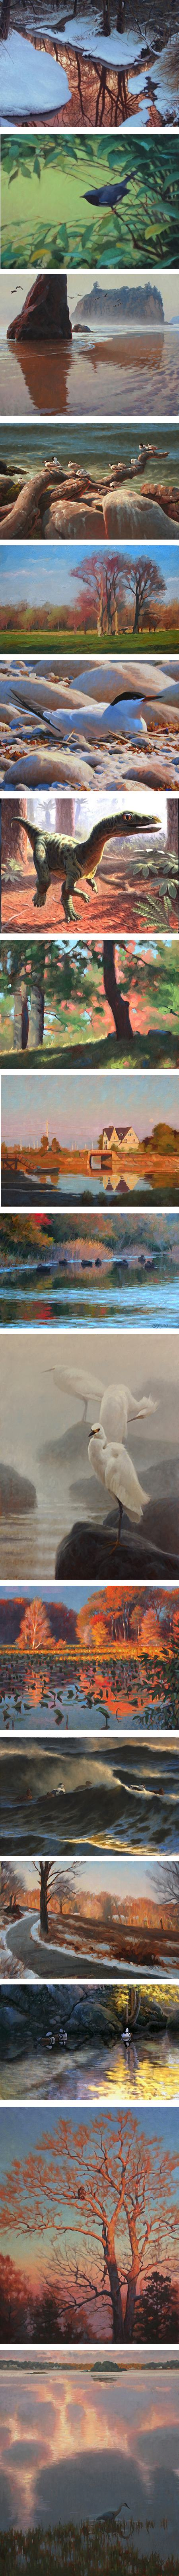 Sean Murtha, birds, nature art, plein air landscape painting